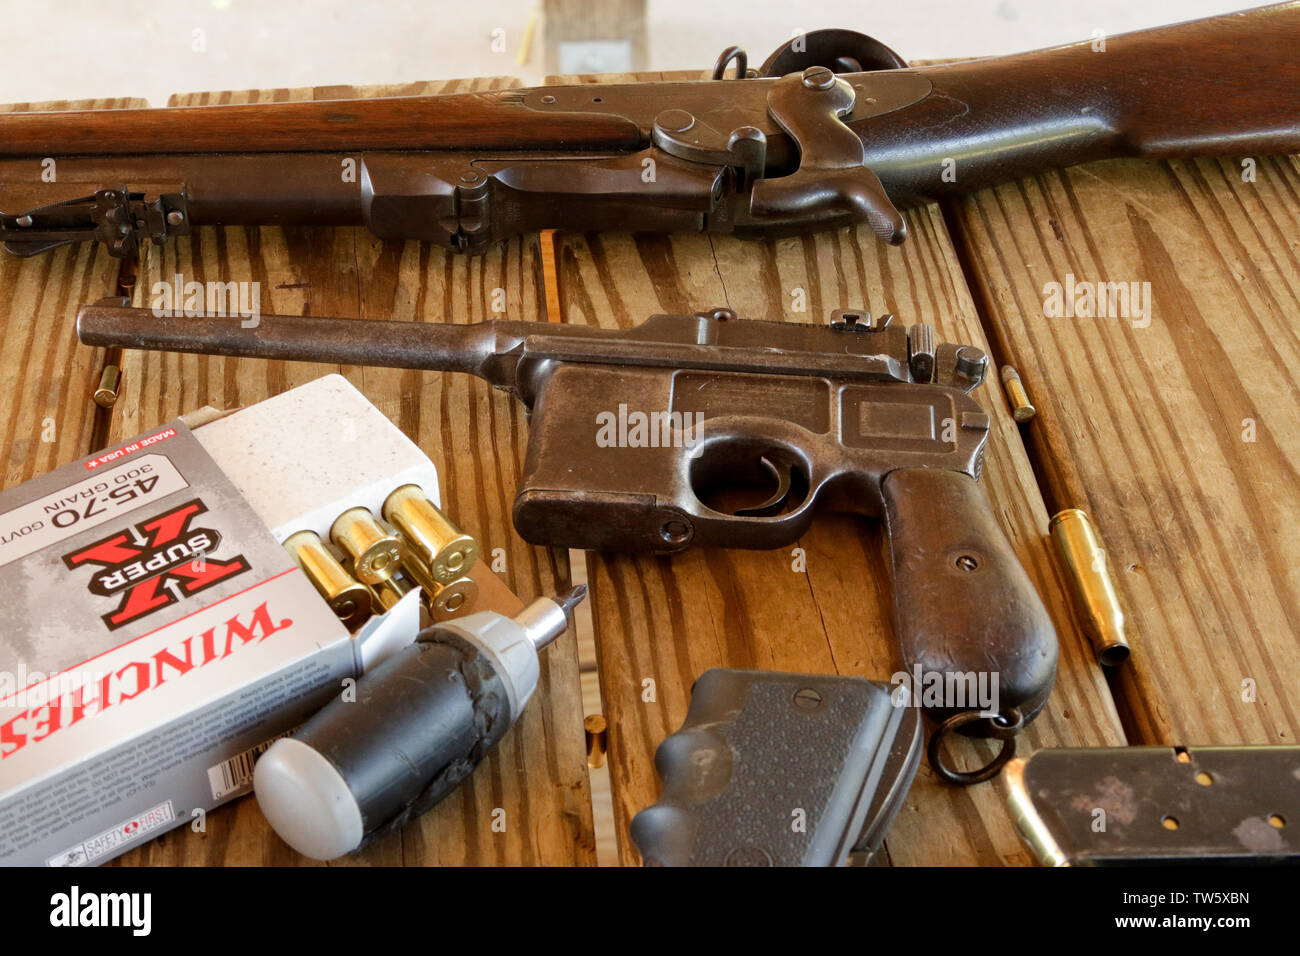 Mauser Stock Photos & Mauser Stock Images - Alamy